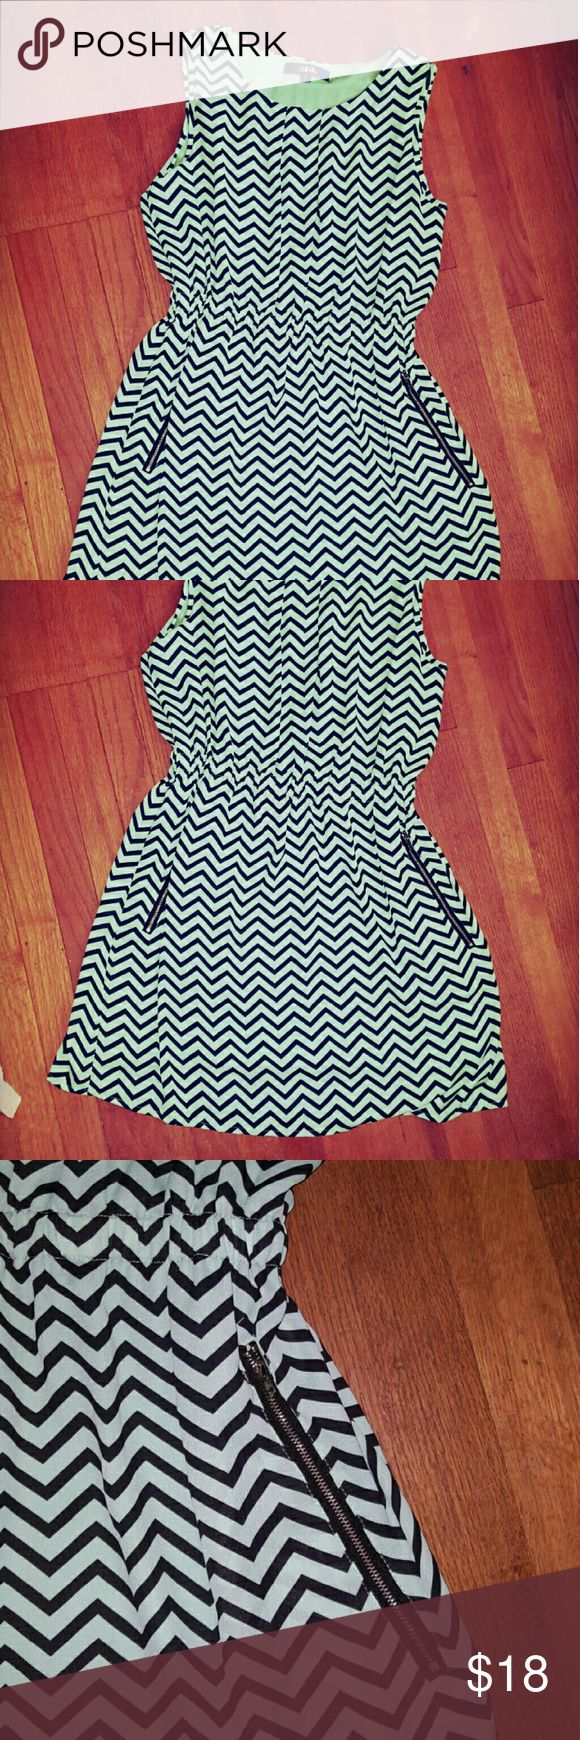 SML chevron dress, nearly new Pale mint green and black chevron lined with pale mint fabric, zipper details on pockets SML  Dresses